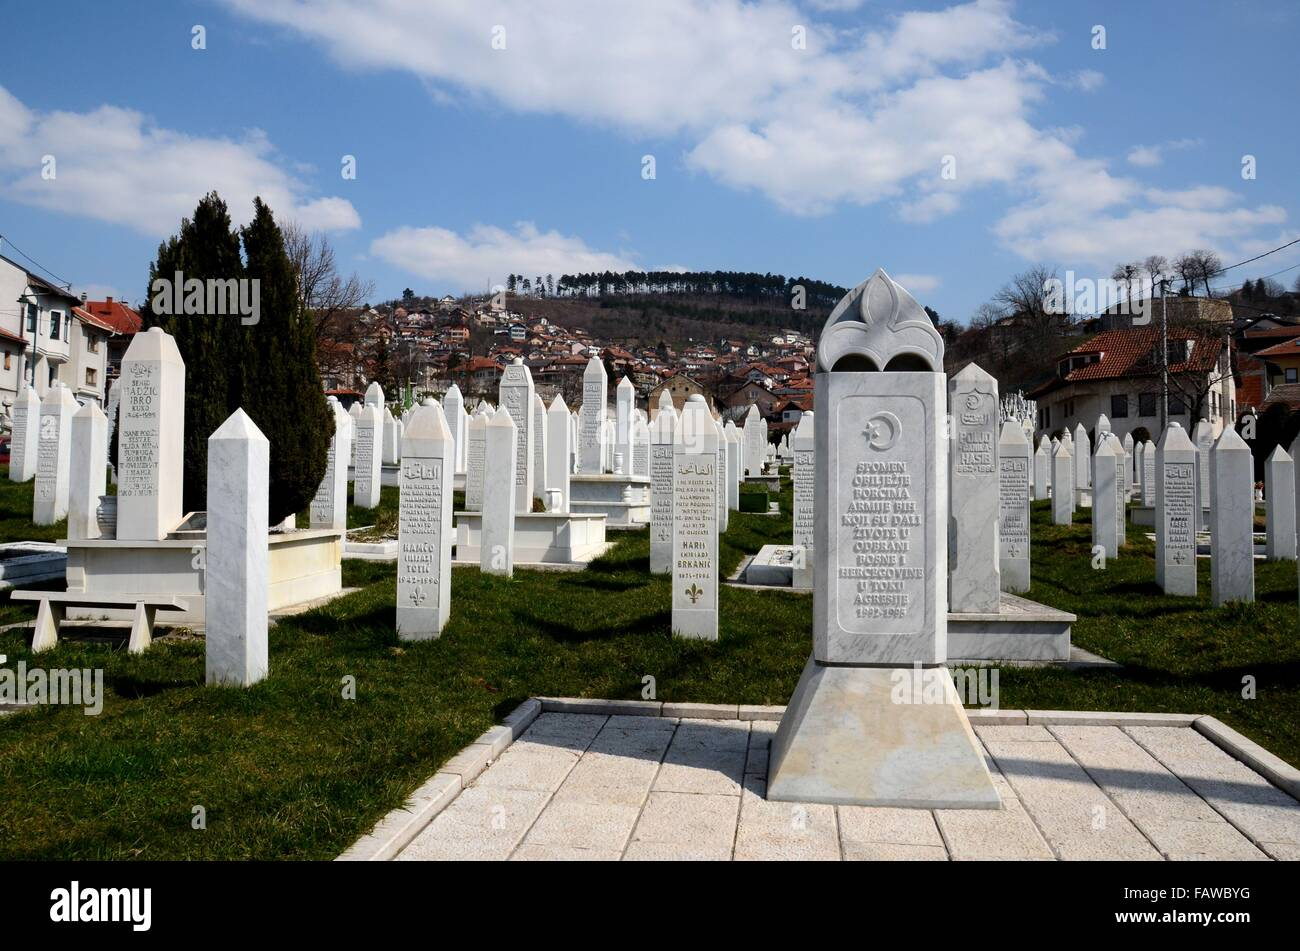 Islamic Muslim Tombstones of Bosnian soldiers at Martyrs Memorial Cemetery Sarajevo Bosnia - Stock Image